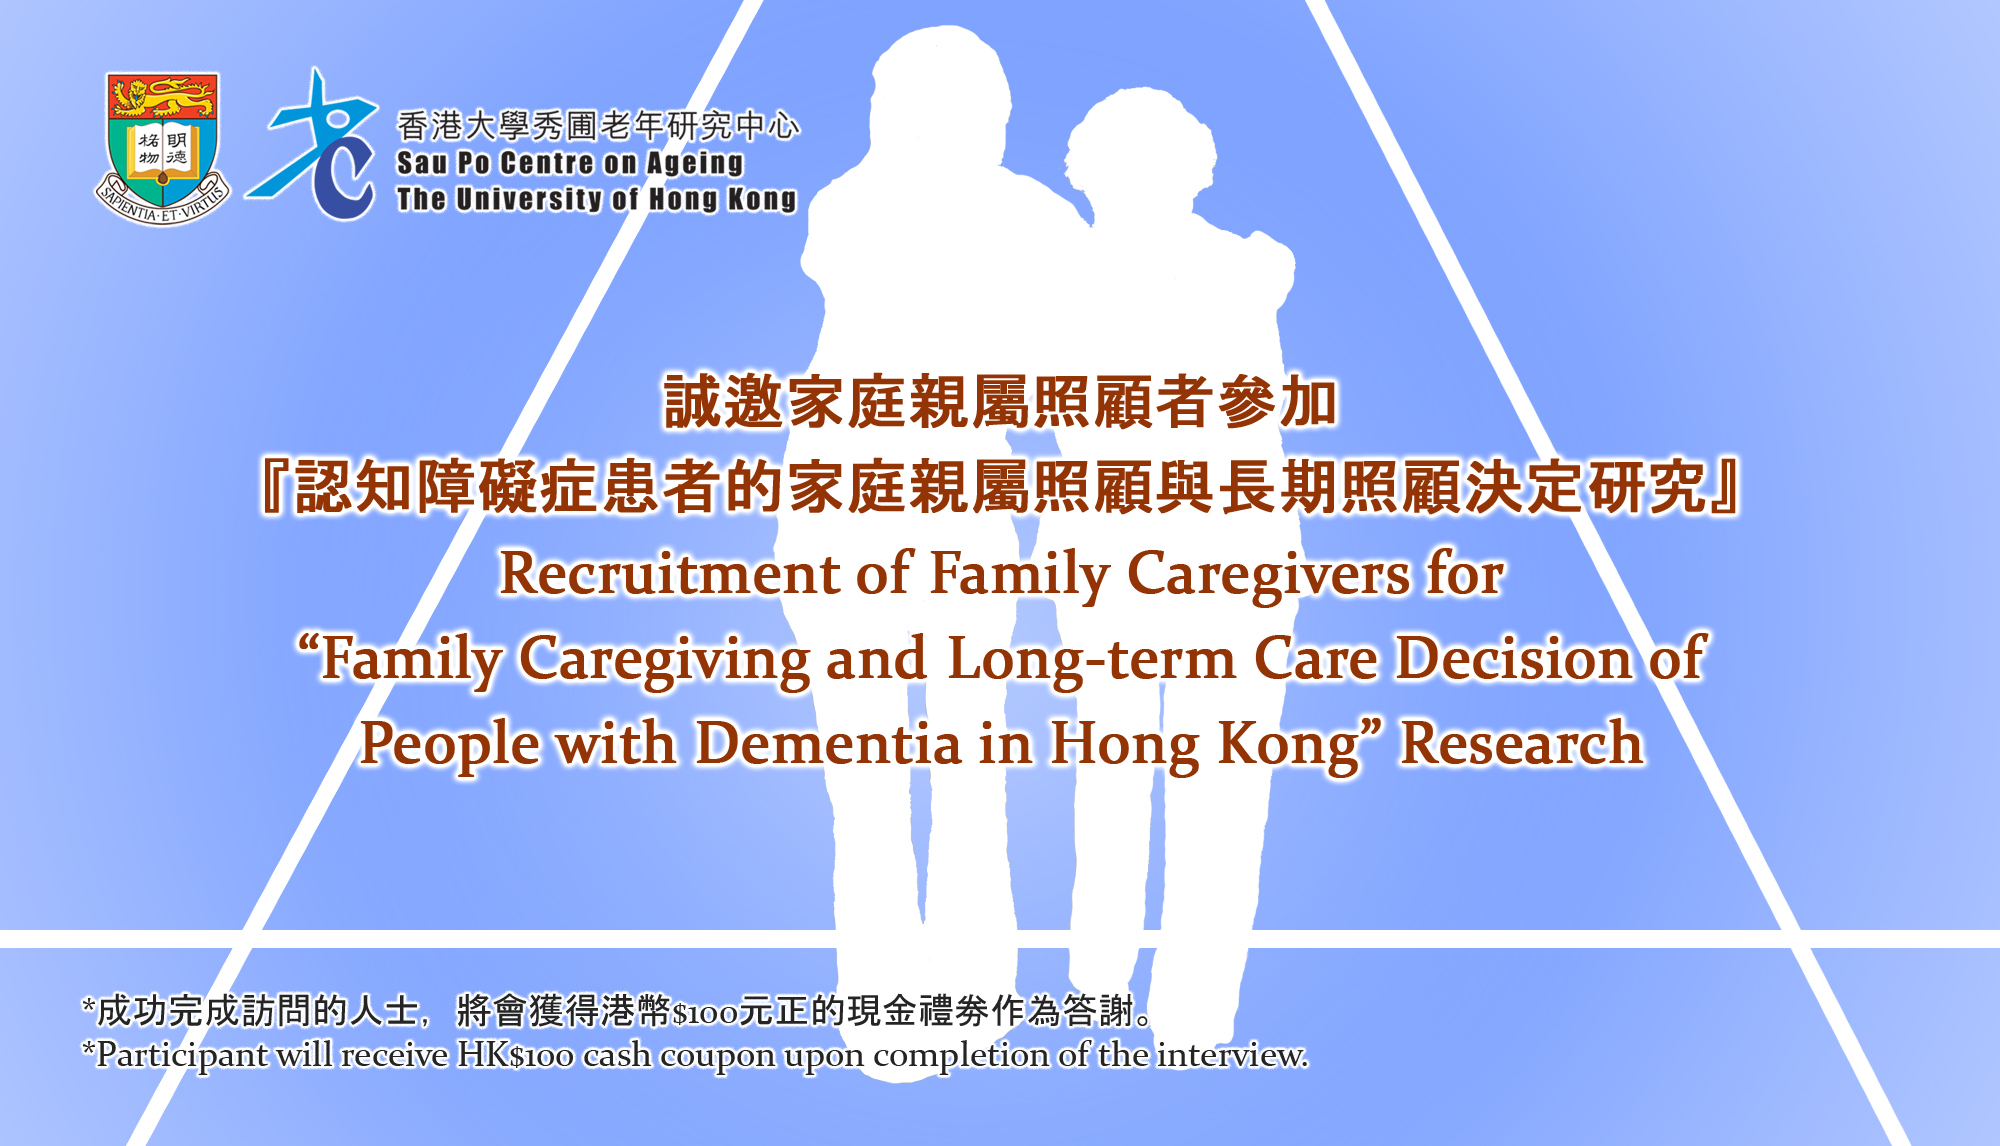 Recruitment of Family Caregivers for Research